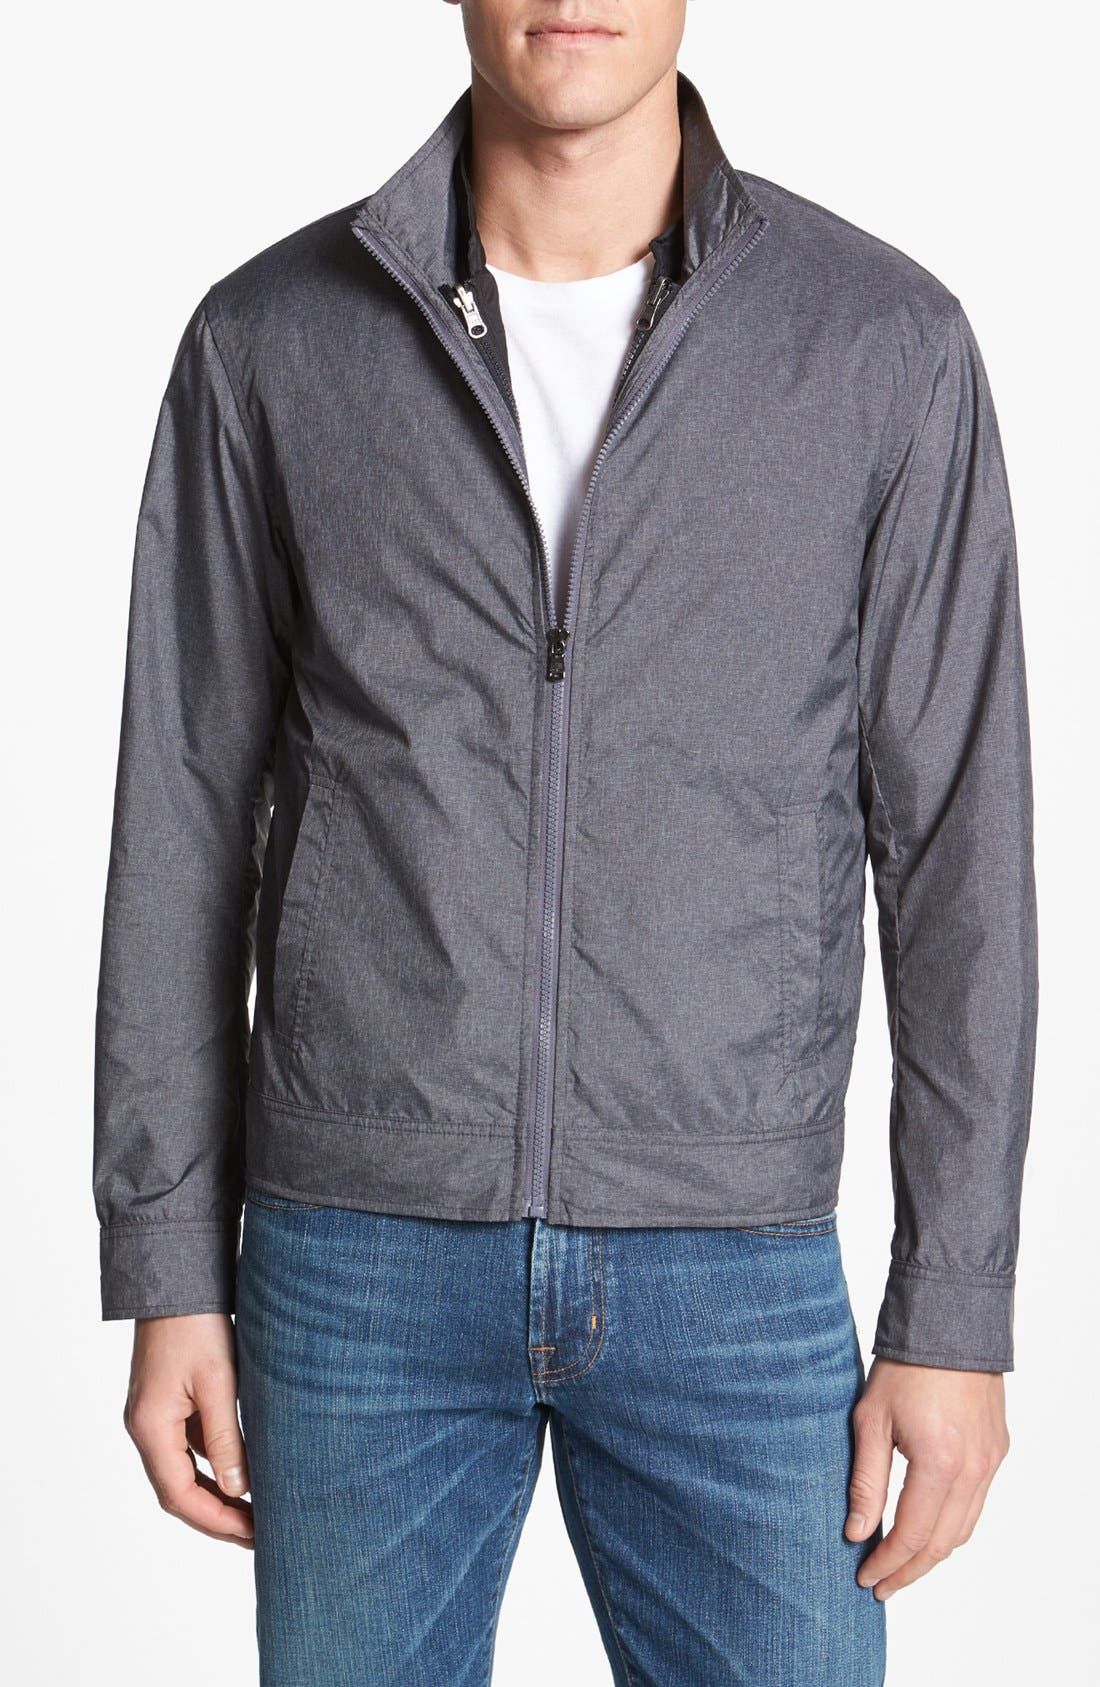 Main Image - Michael Kors Trim Fit 3-in-1 Jacket